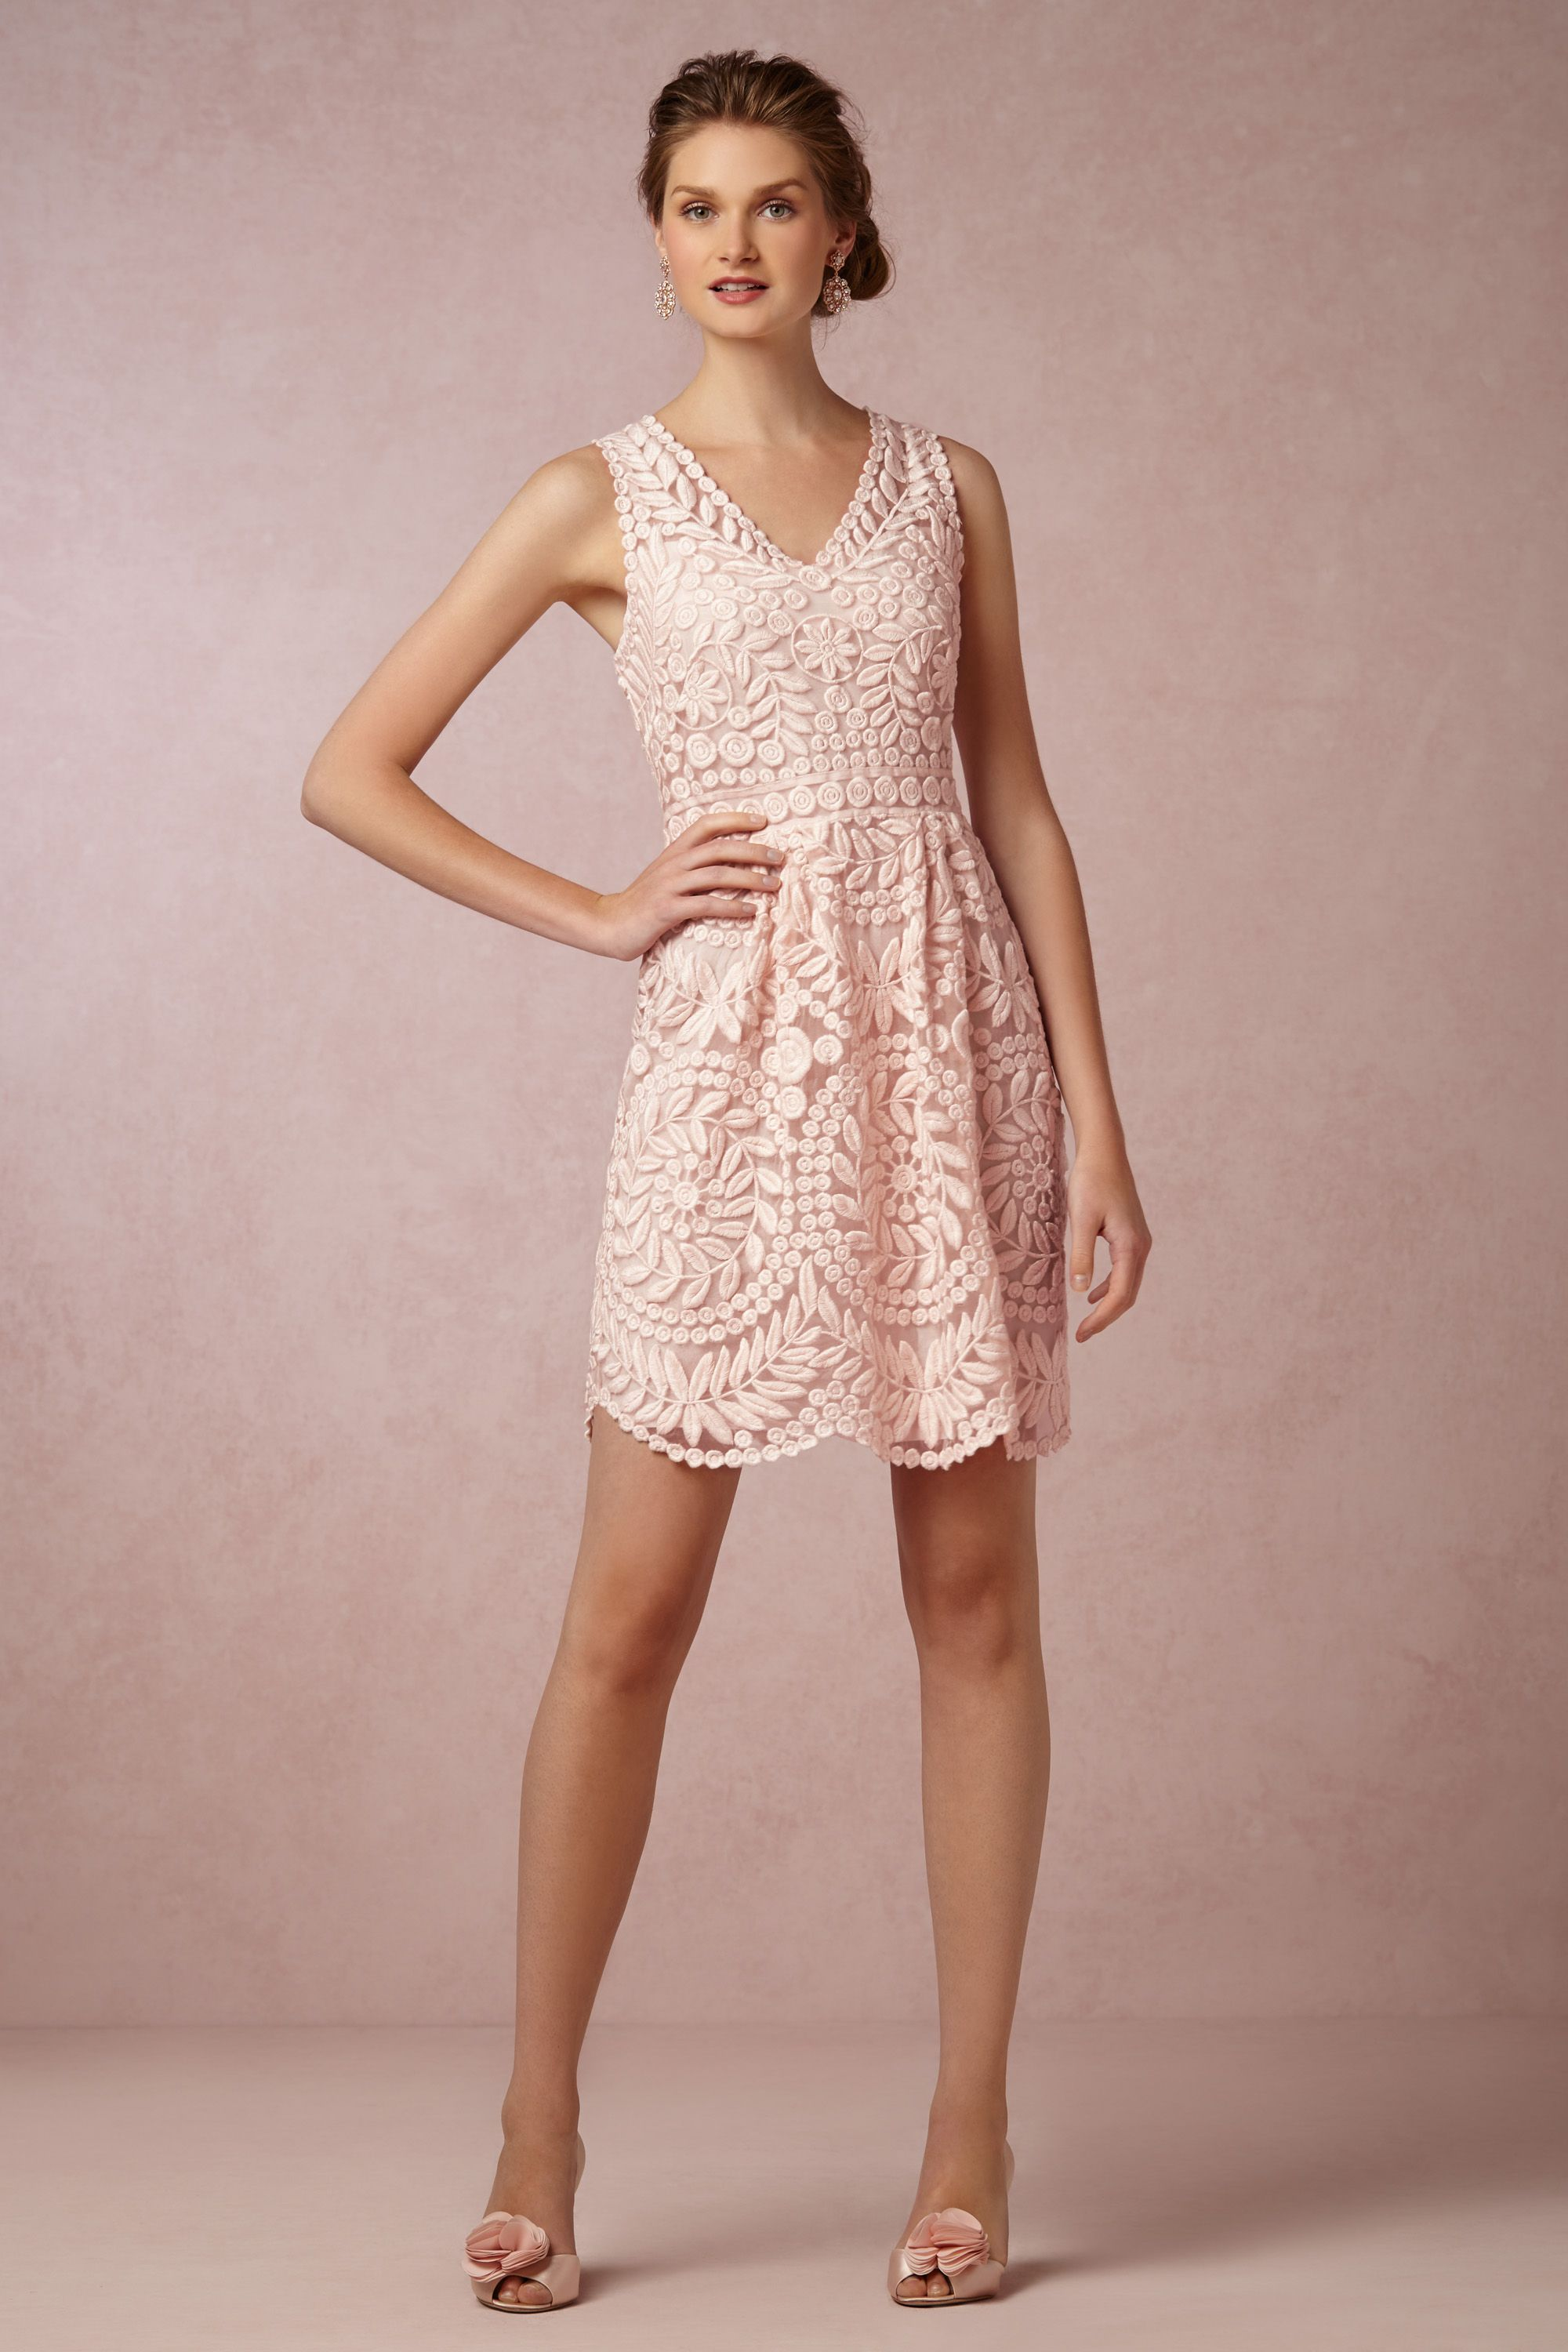 Pale pink dress for wedding guest  Sienna Dress from BHLDN  Vestiti  Pinterest  Pale pink Clothes